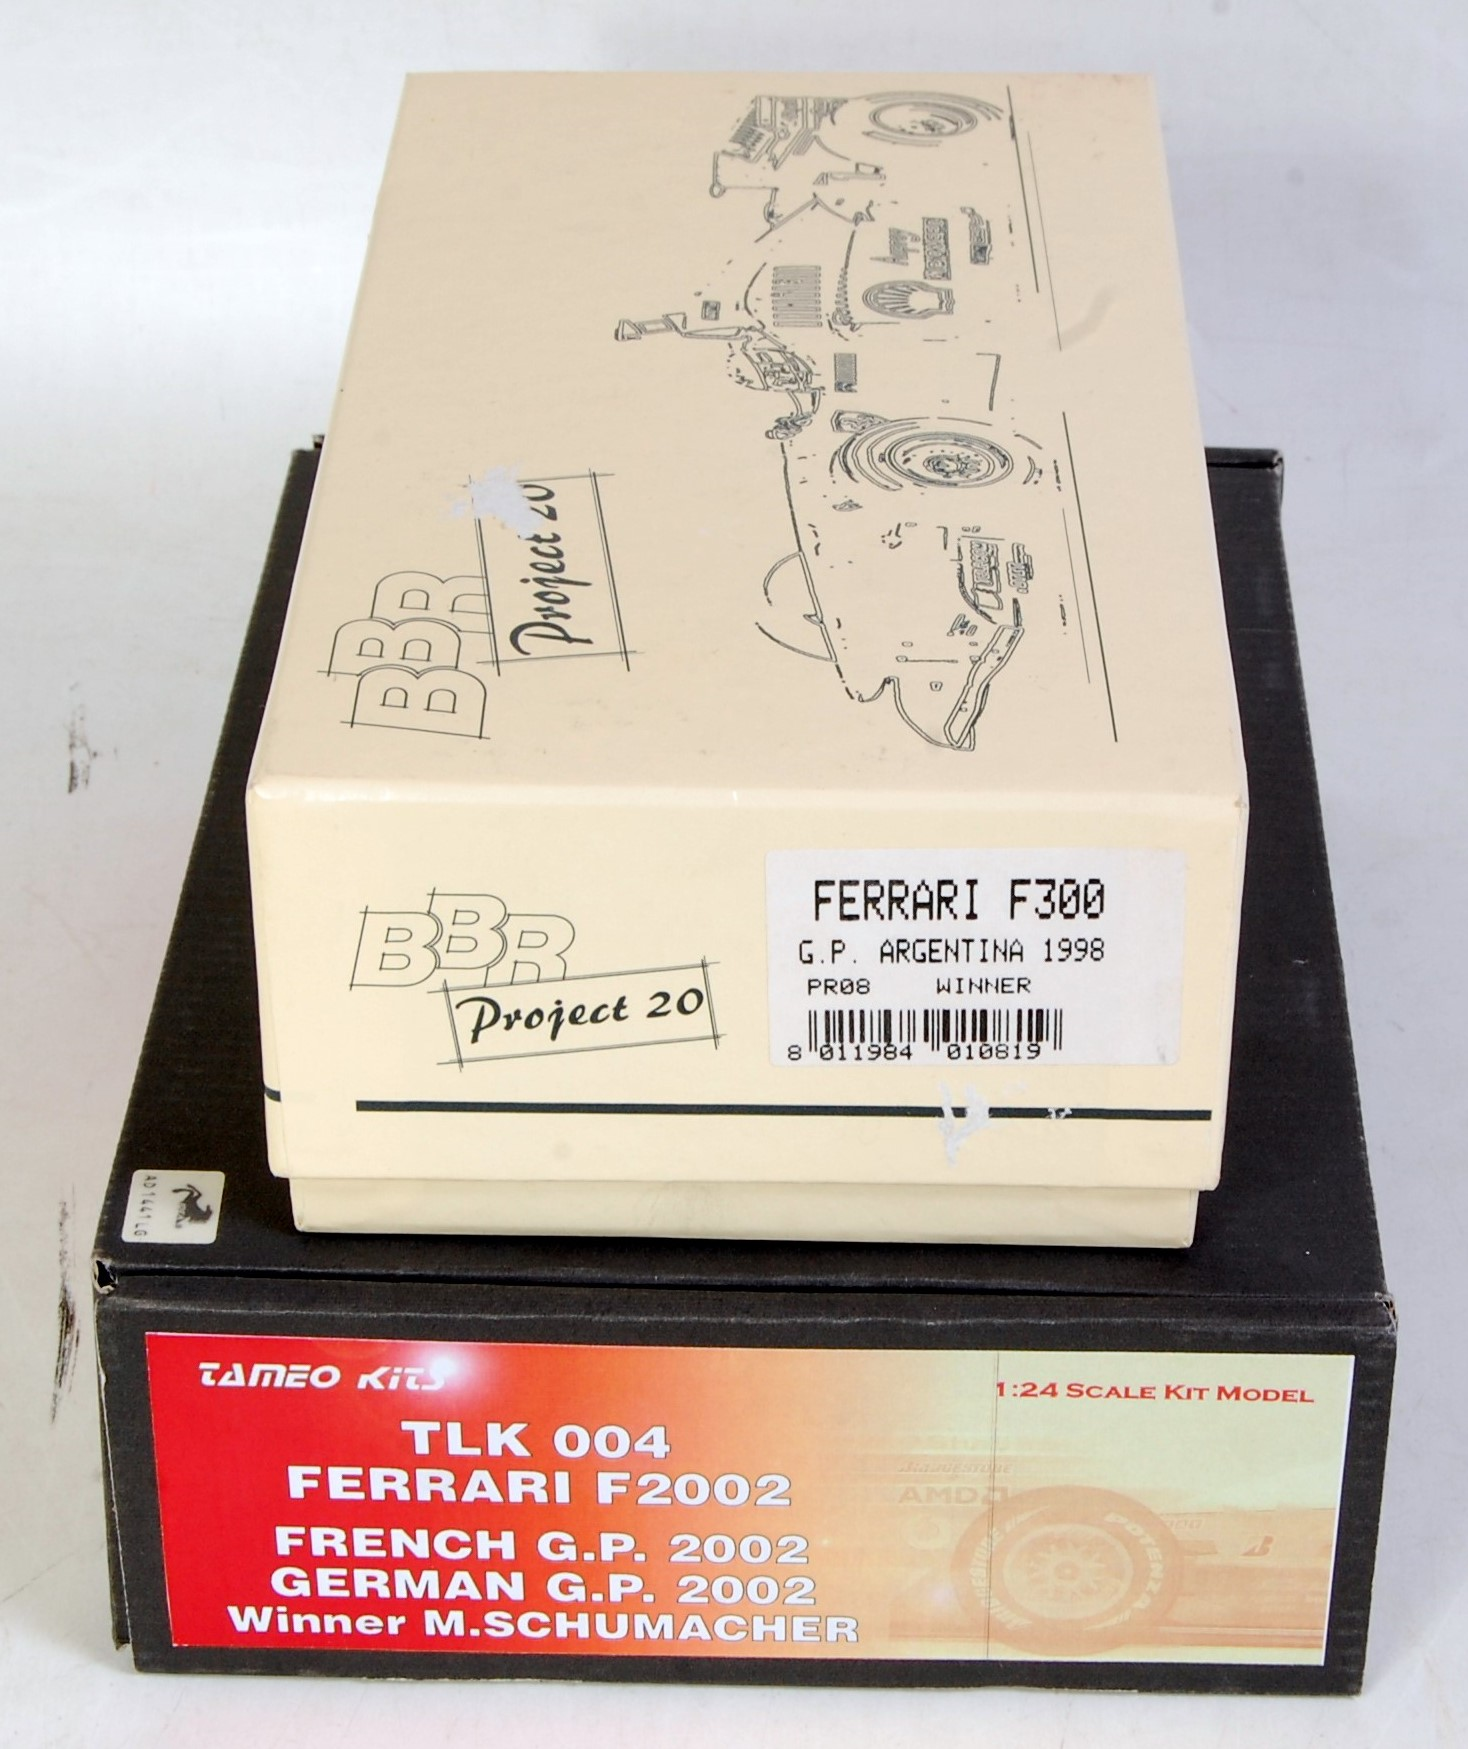 Lot 1515 - A BBR Project 20 and Tameo Kits 1/24 scale F1 resin car kit group to include a BBR Ferrari F300